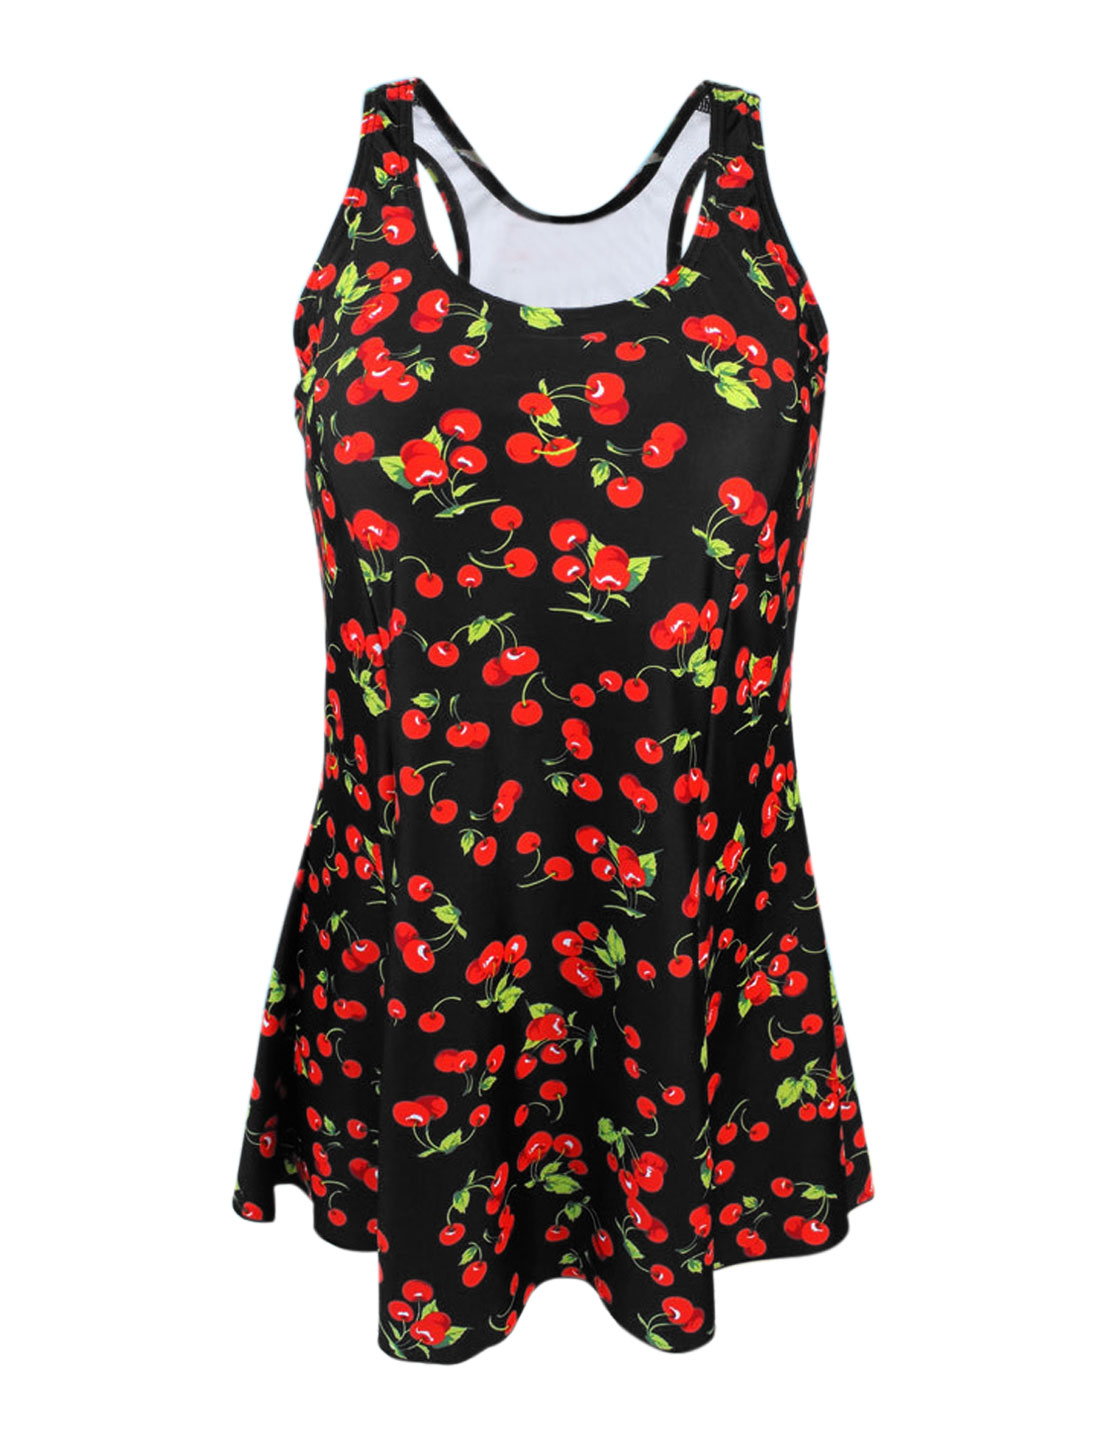 Women Vintage One Piece Cherry Slim Bathing Suit Swimsuit Swimdress S Cover Up